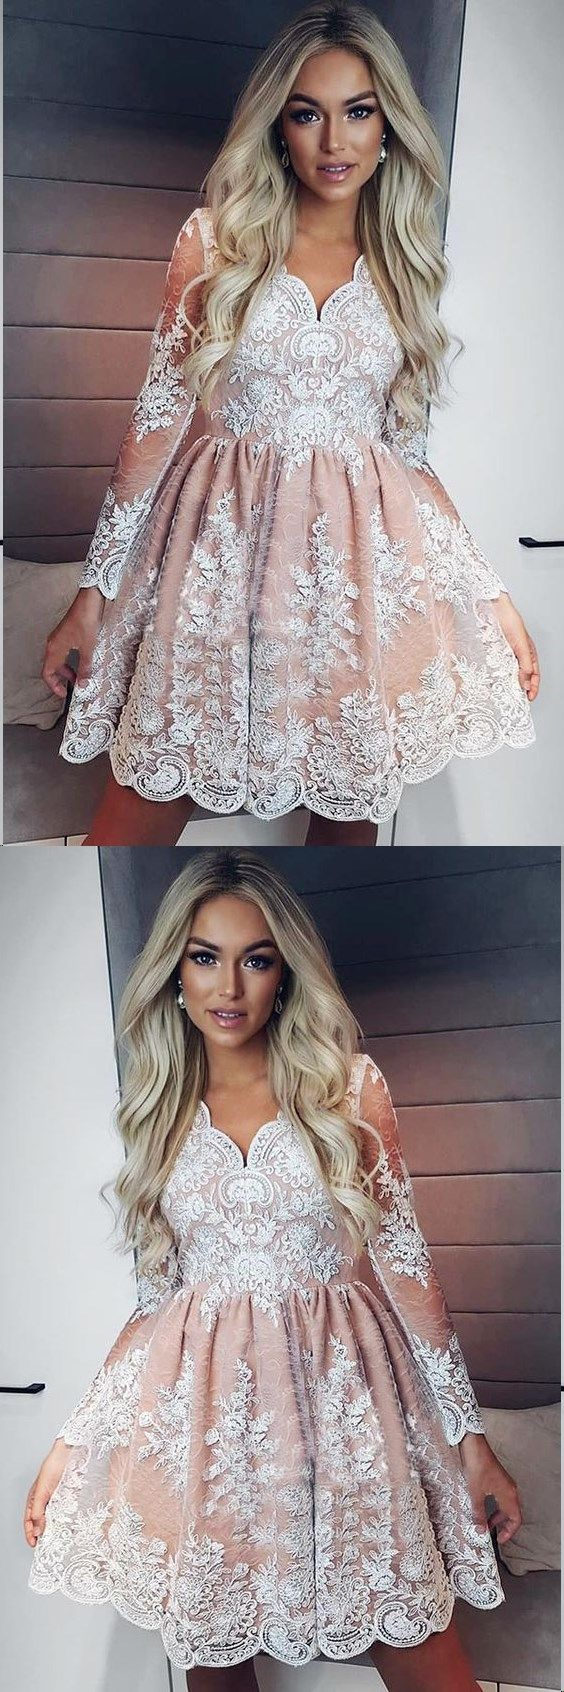 Long sleeve homecoming dresses lace aline short prom dress party